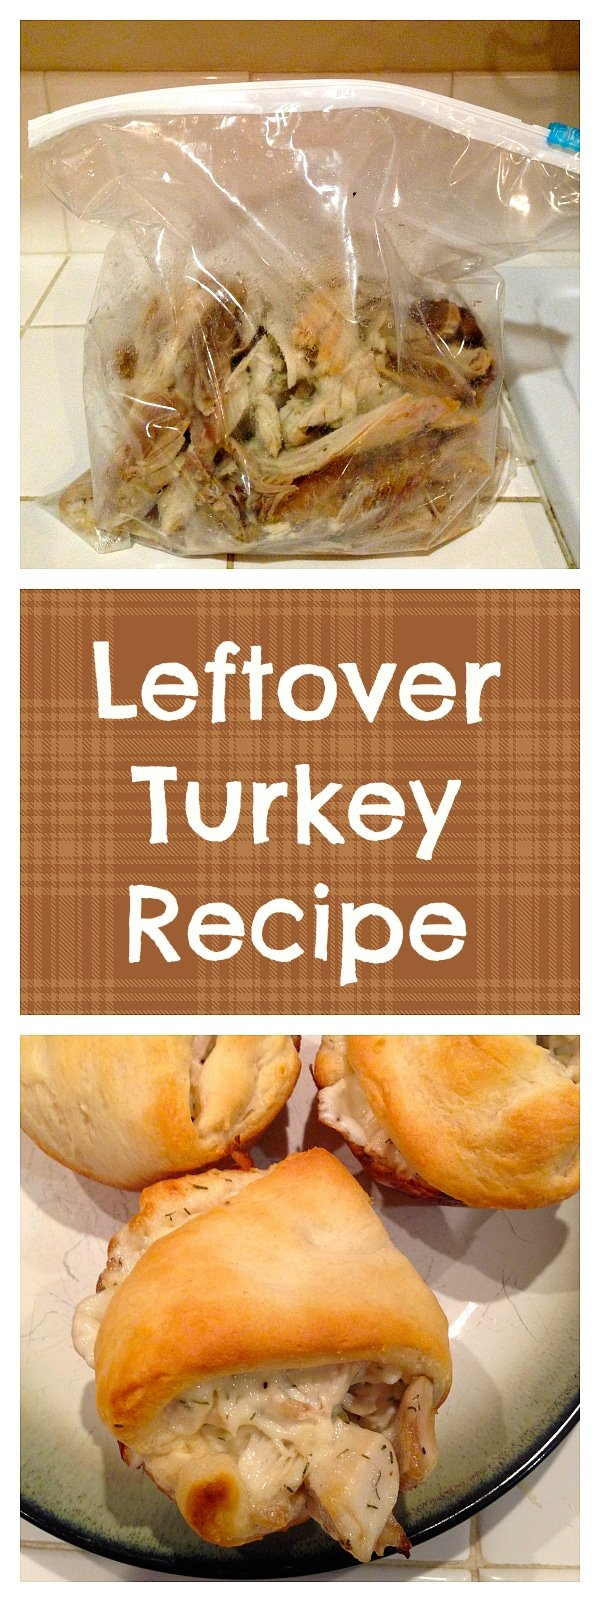 Best Leftover Turkey Recipe Everyone Will Love